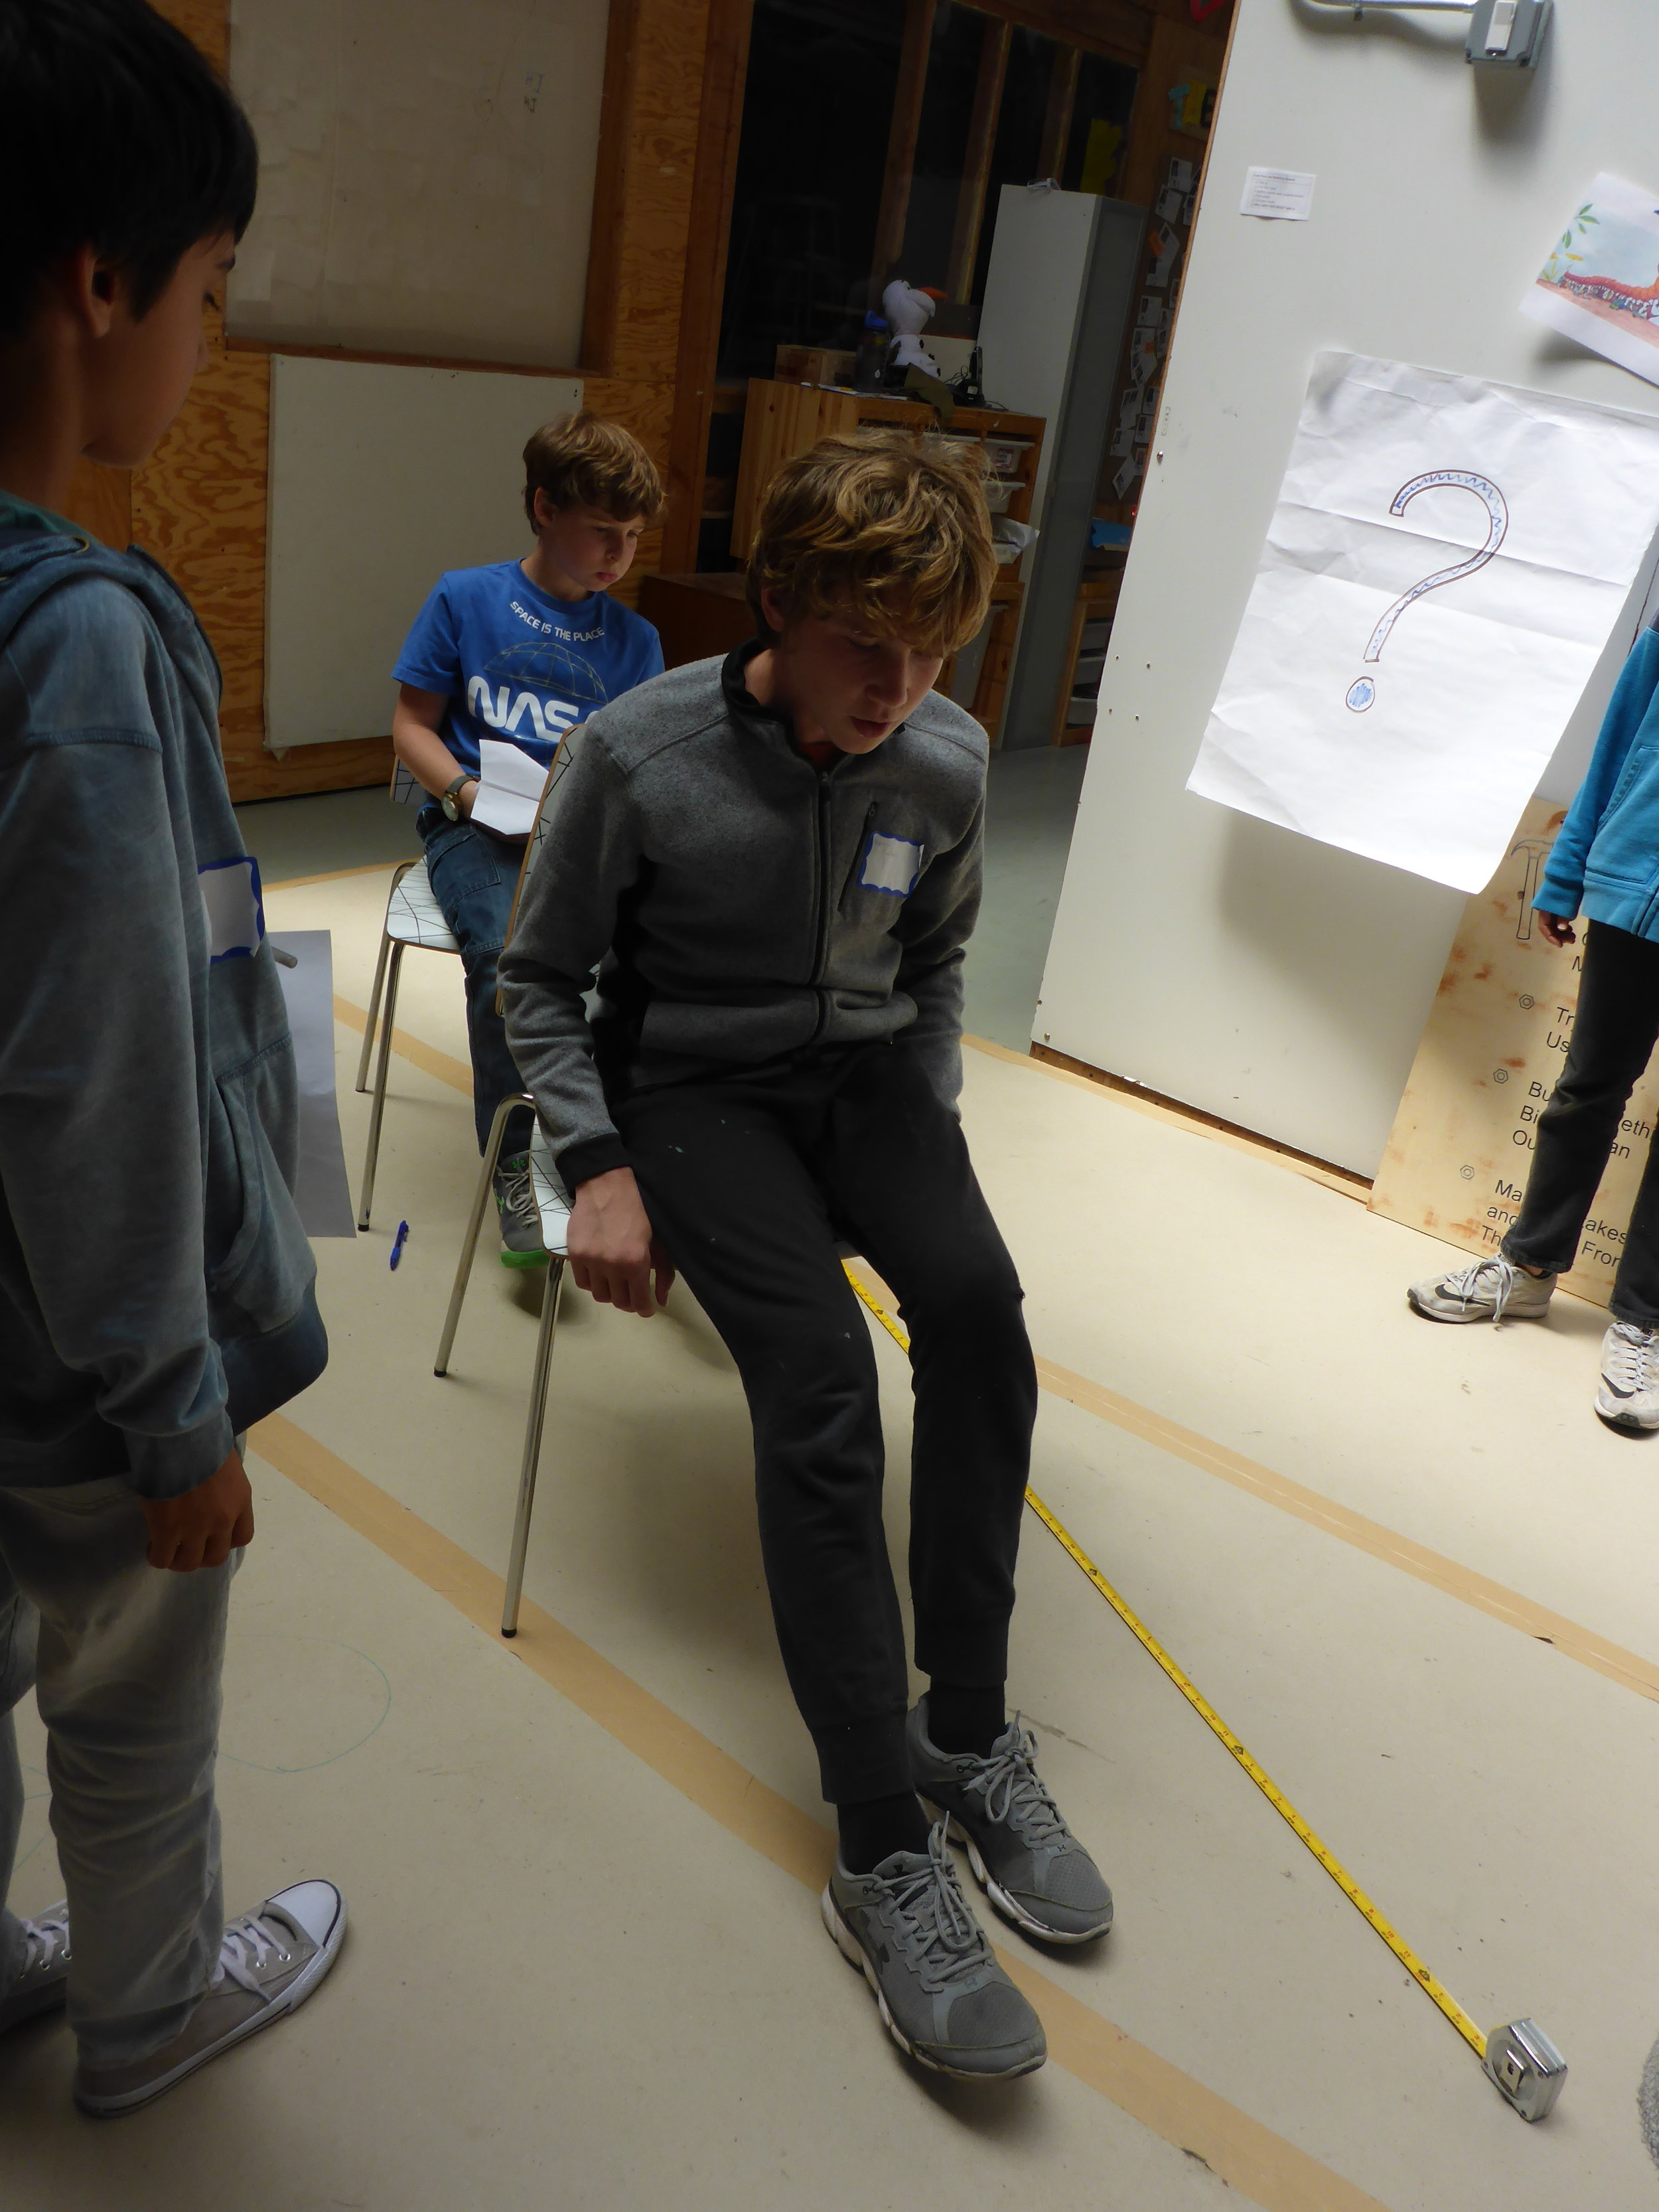 The kids discovered chairs and props are a great way to figure out the most ergonomical dimensions for a project!